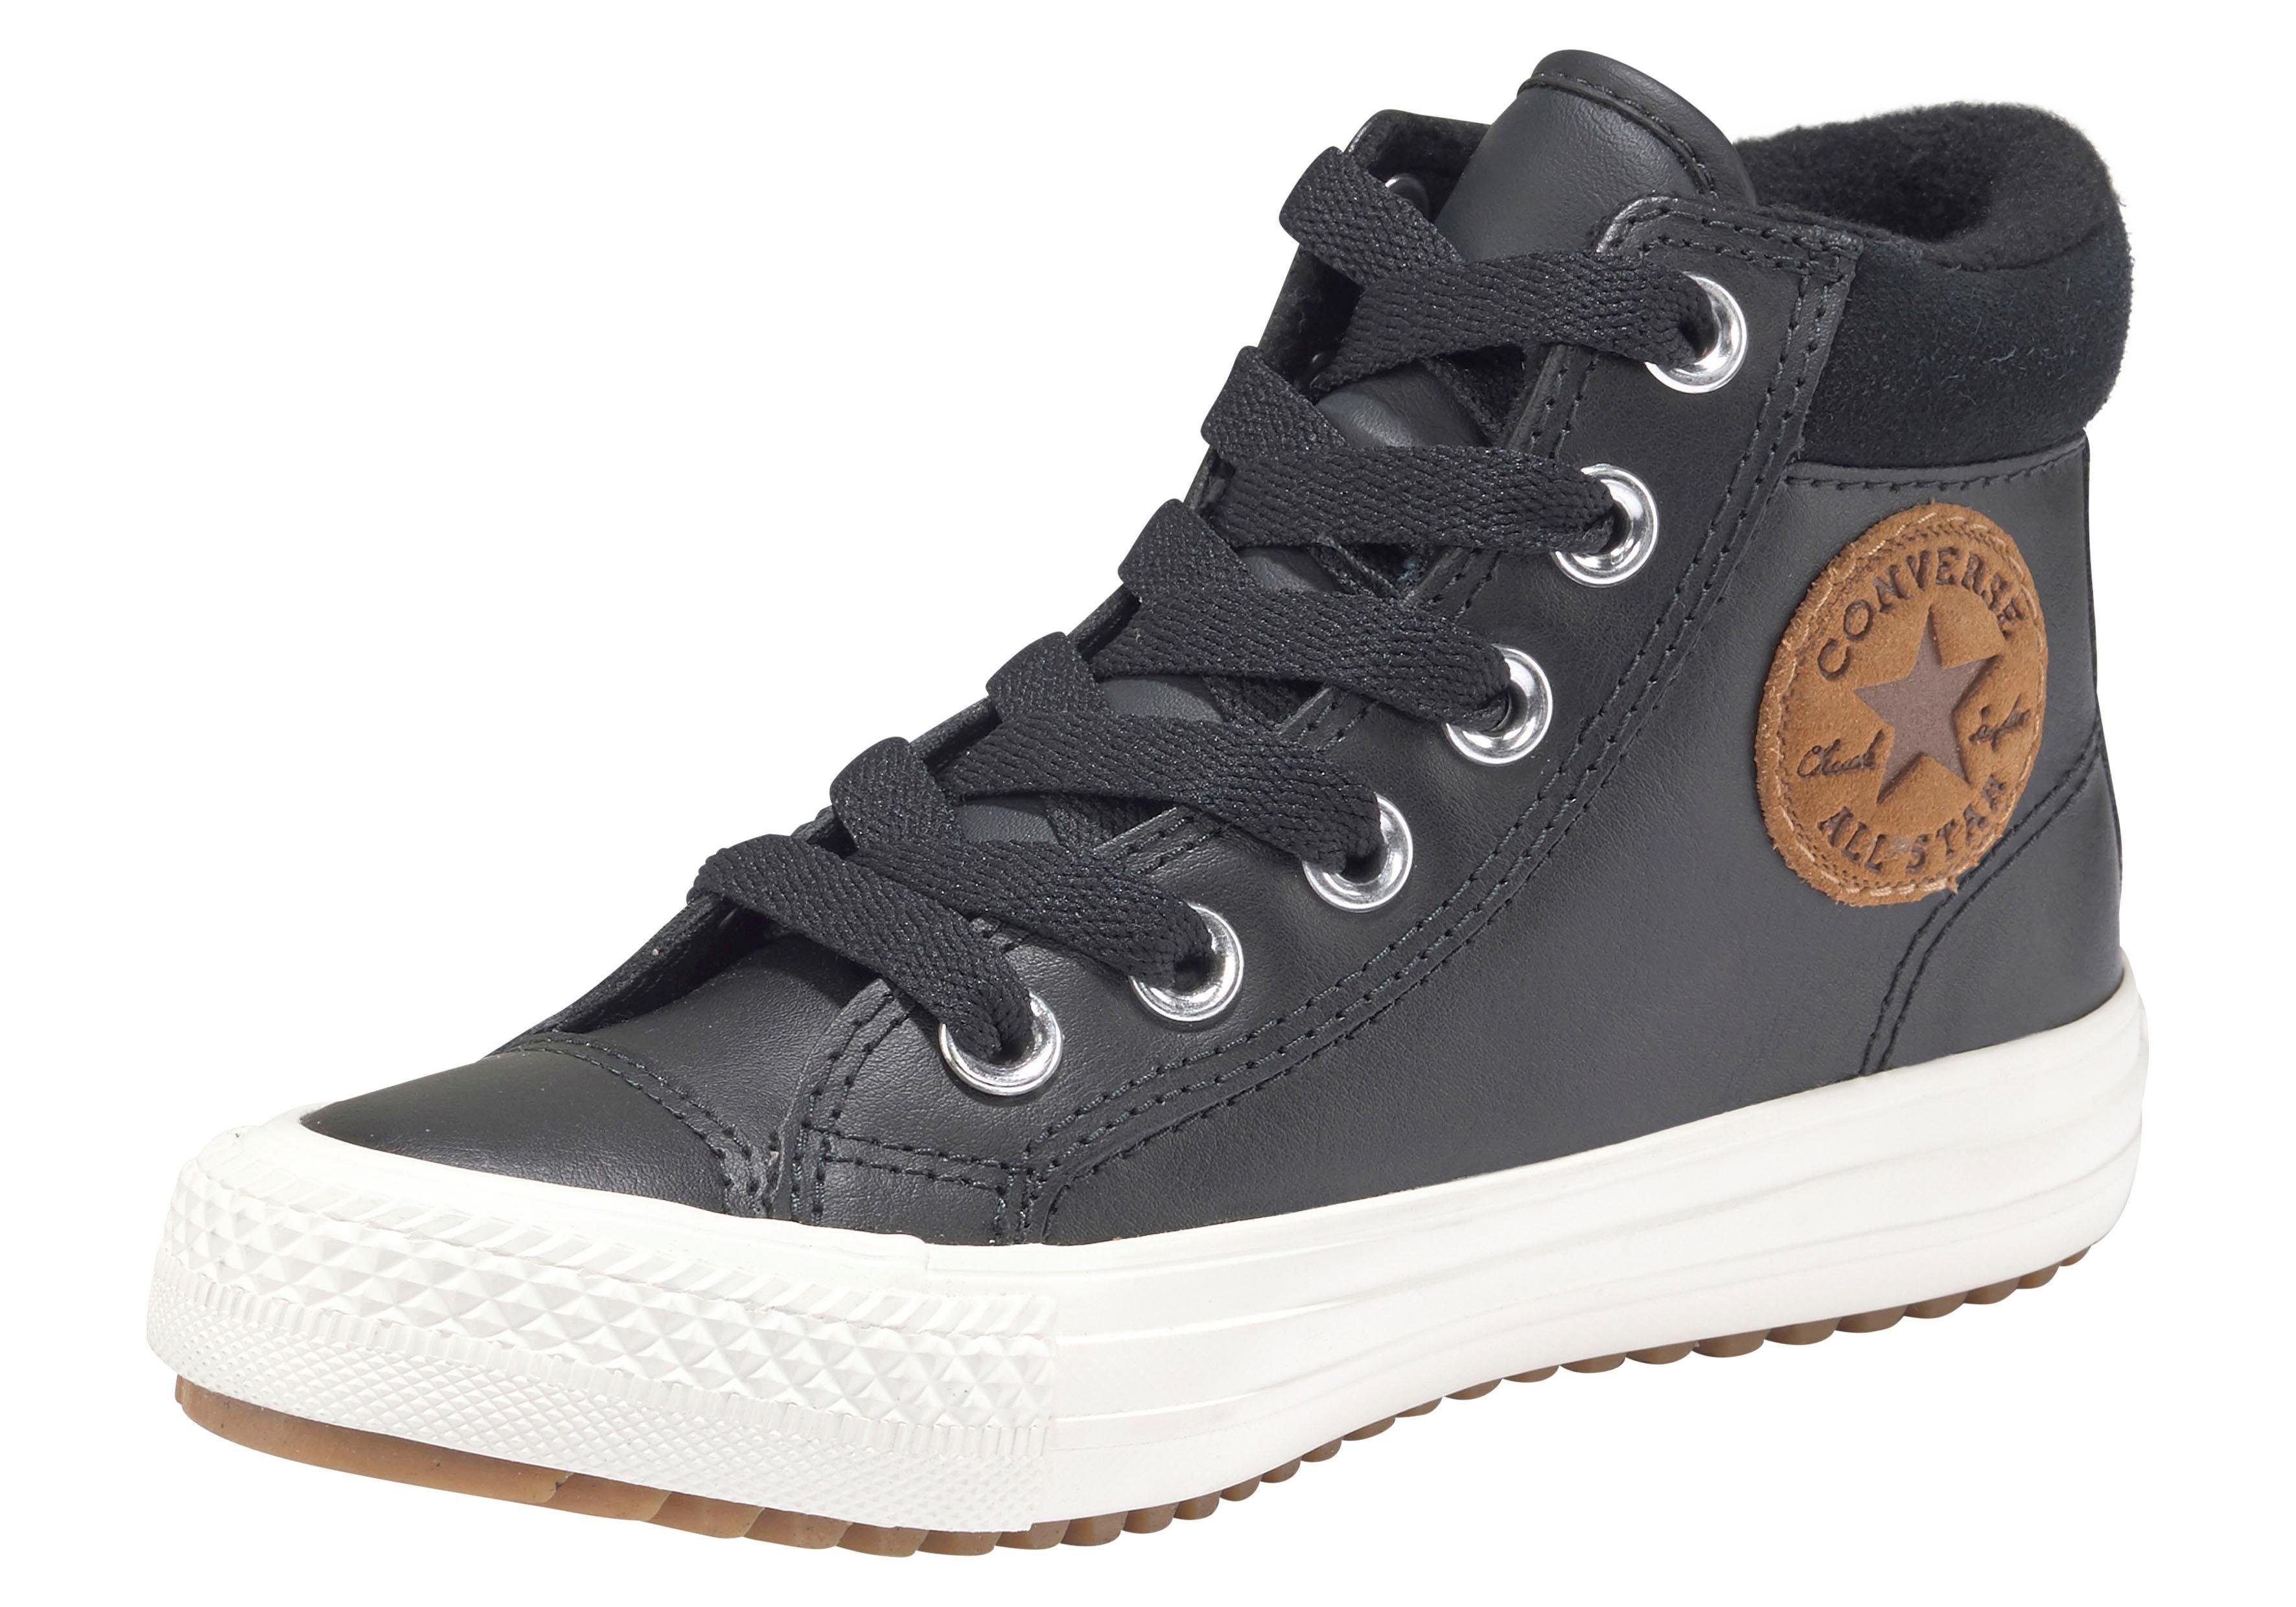 Boot Sneakers Pc »chuck Hi« All Taylor Converse Online Star xYAw1qWd